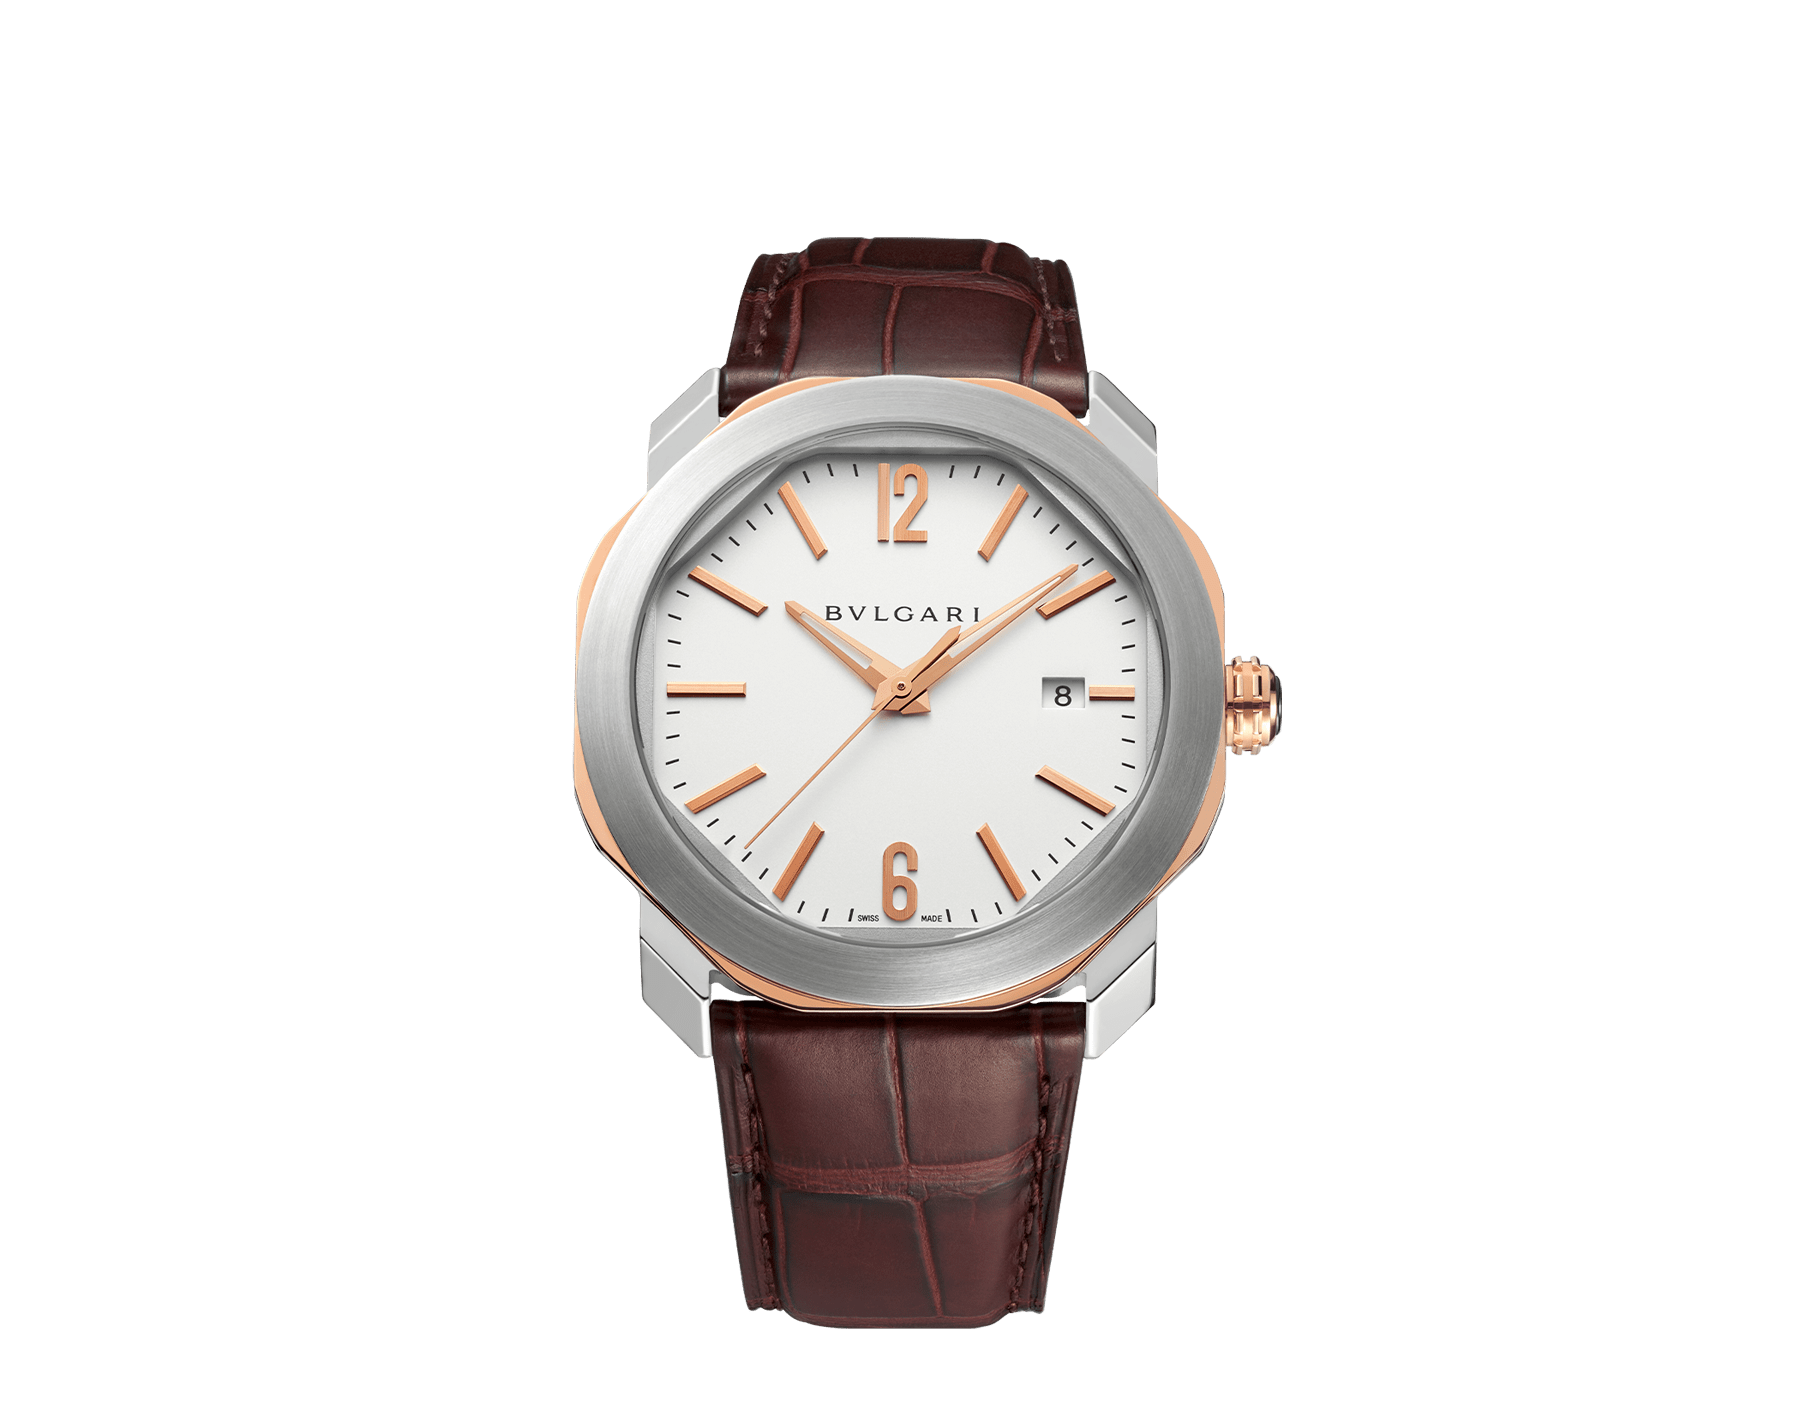 Octo Roma watch with mechanical manufacture movement, automatic winding, case in stainless steel and 18 kt rose gold, silver dial and brown alligator bracelet. 102703 image 1